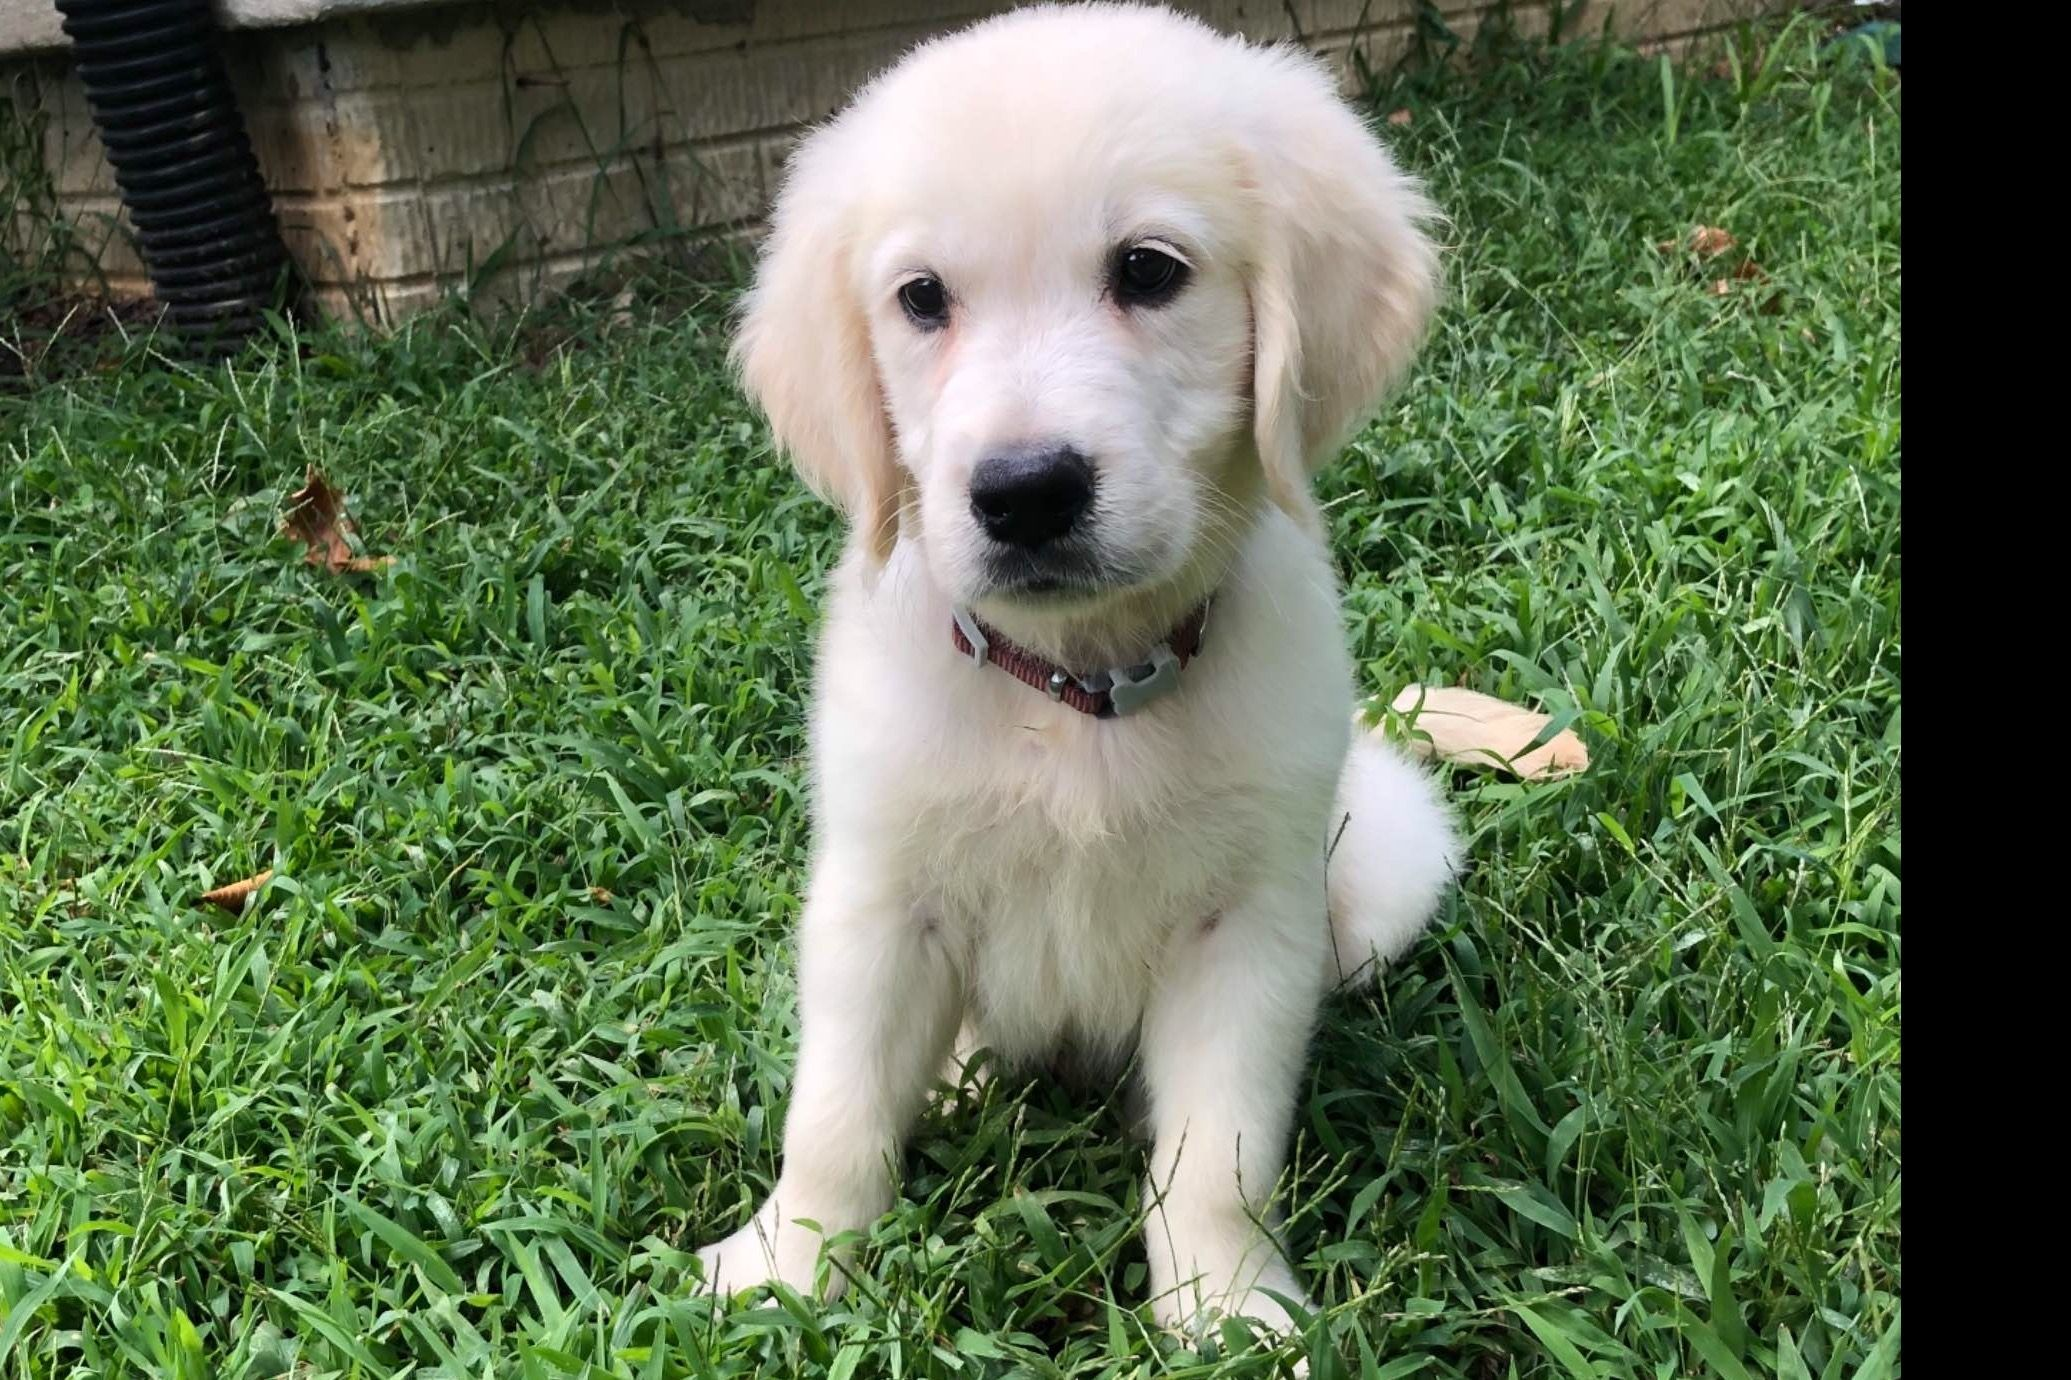 Storybrooke Golden's Has Golden Retriever Puppies For Sale